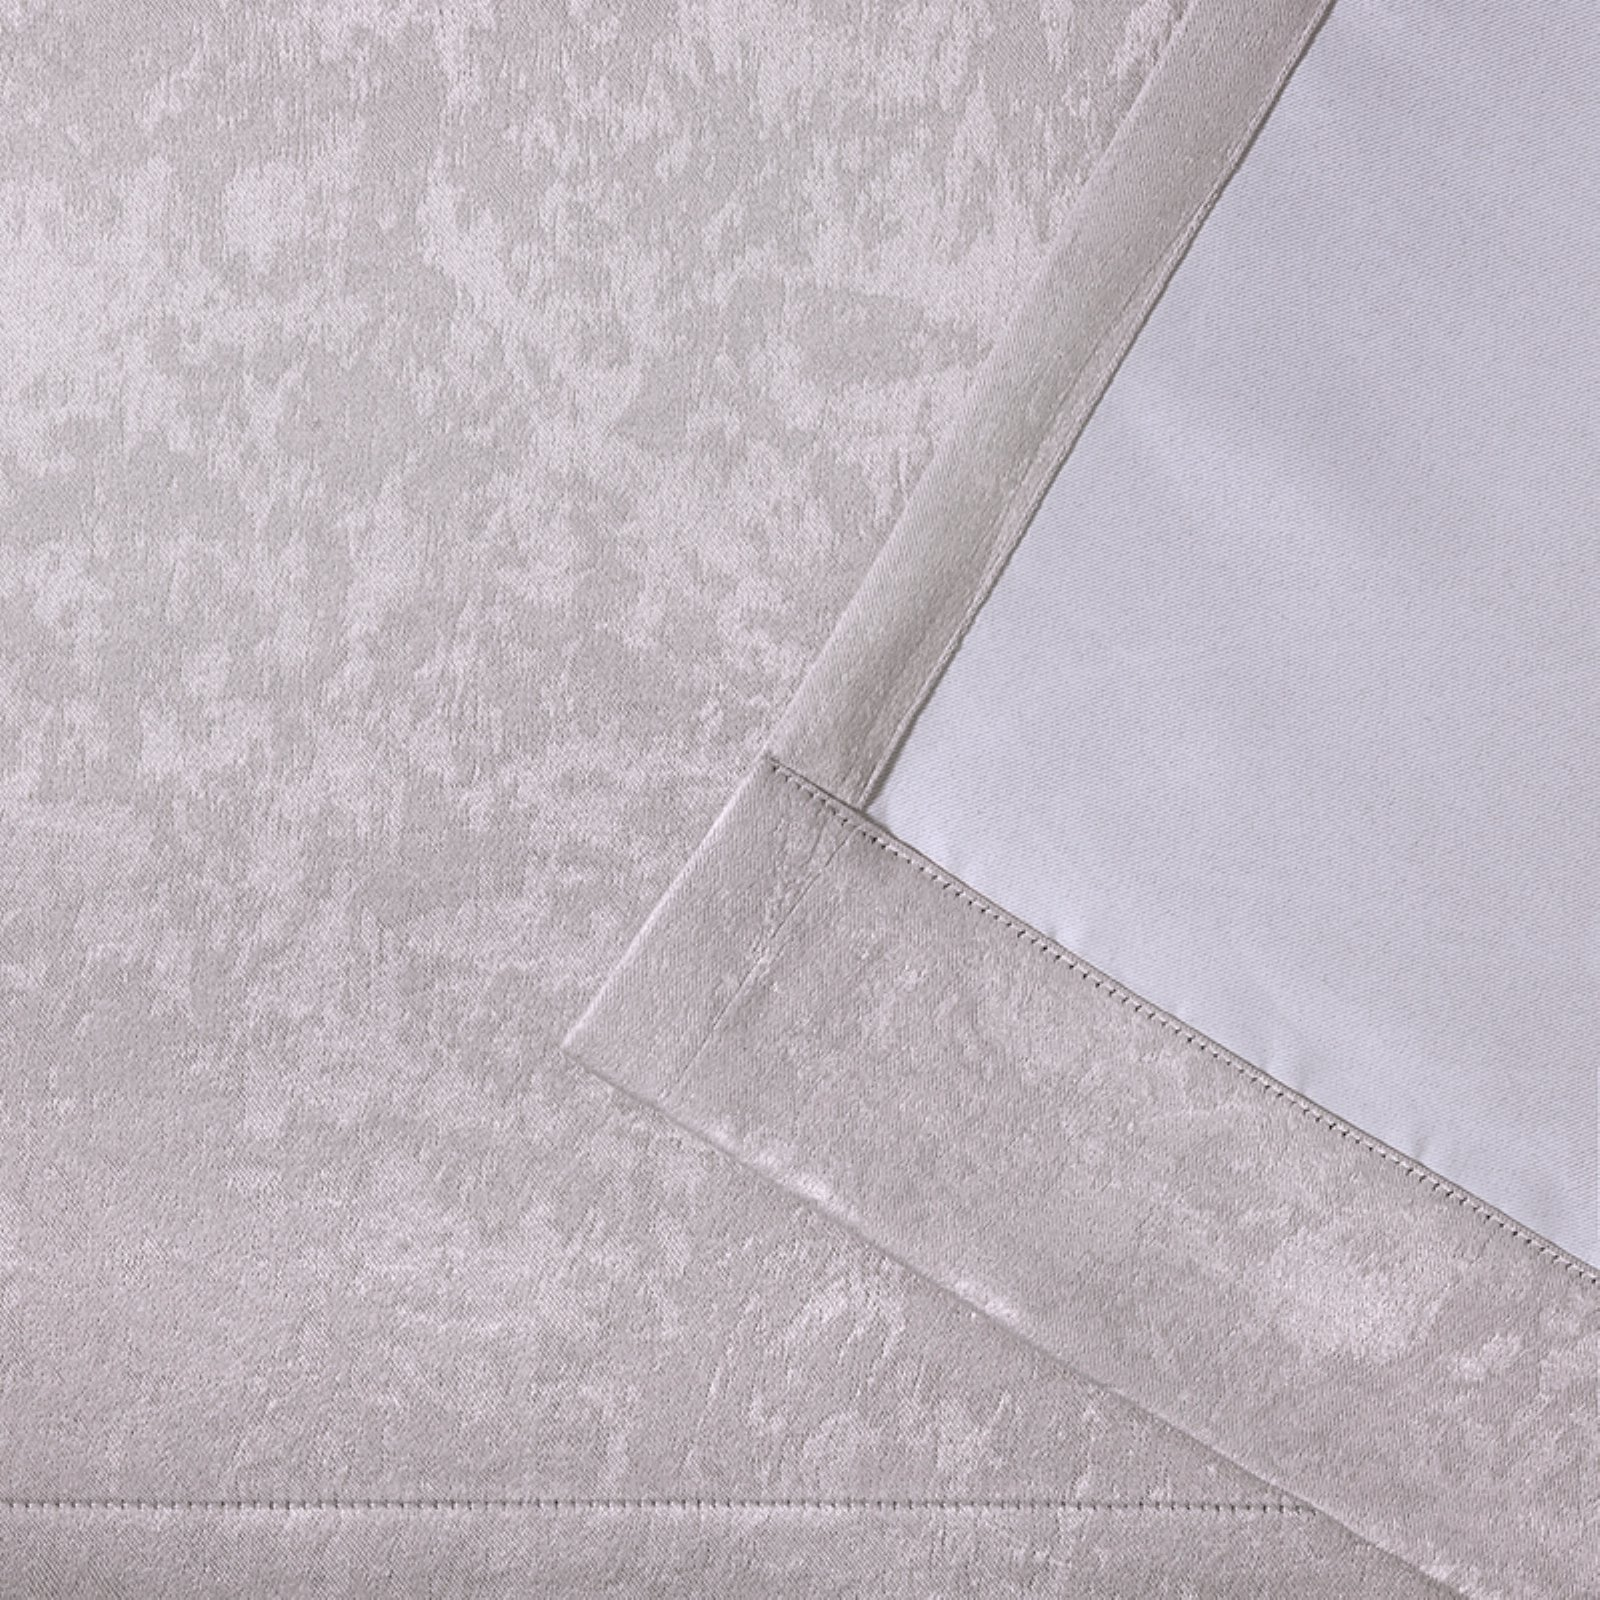 Exclusive Home Antique Shantung Twill Woven Brushed Window Curtain Panel Pair with Grommet Top